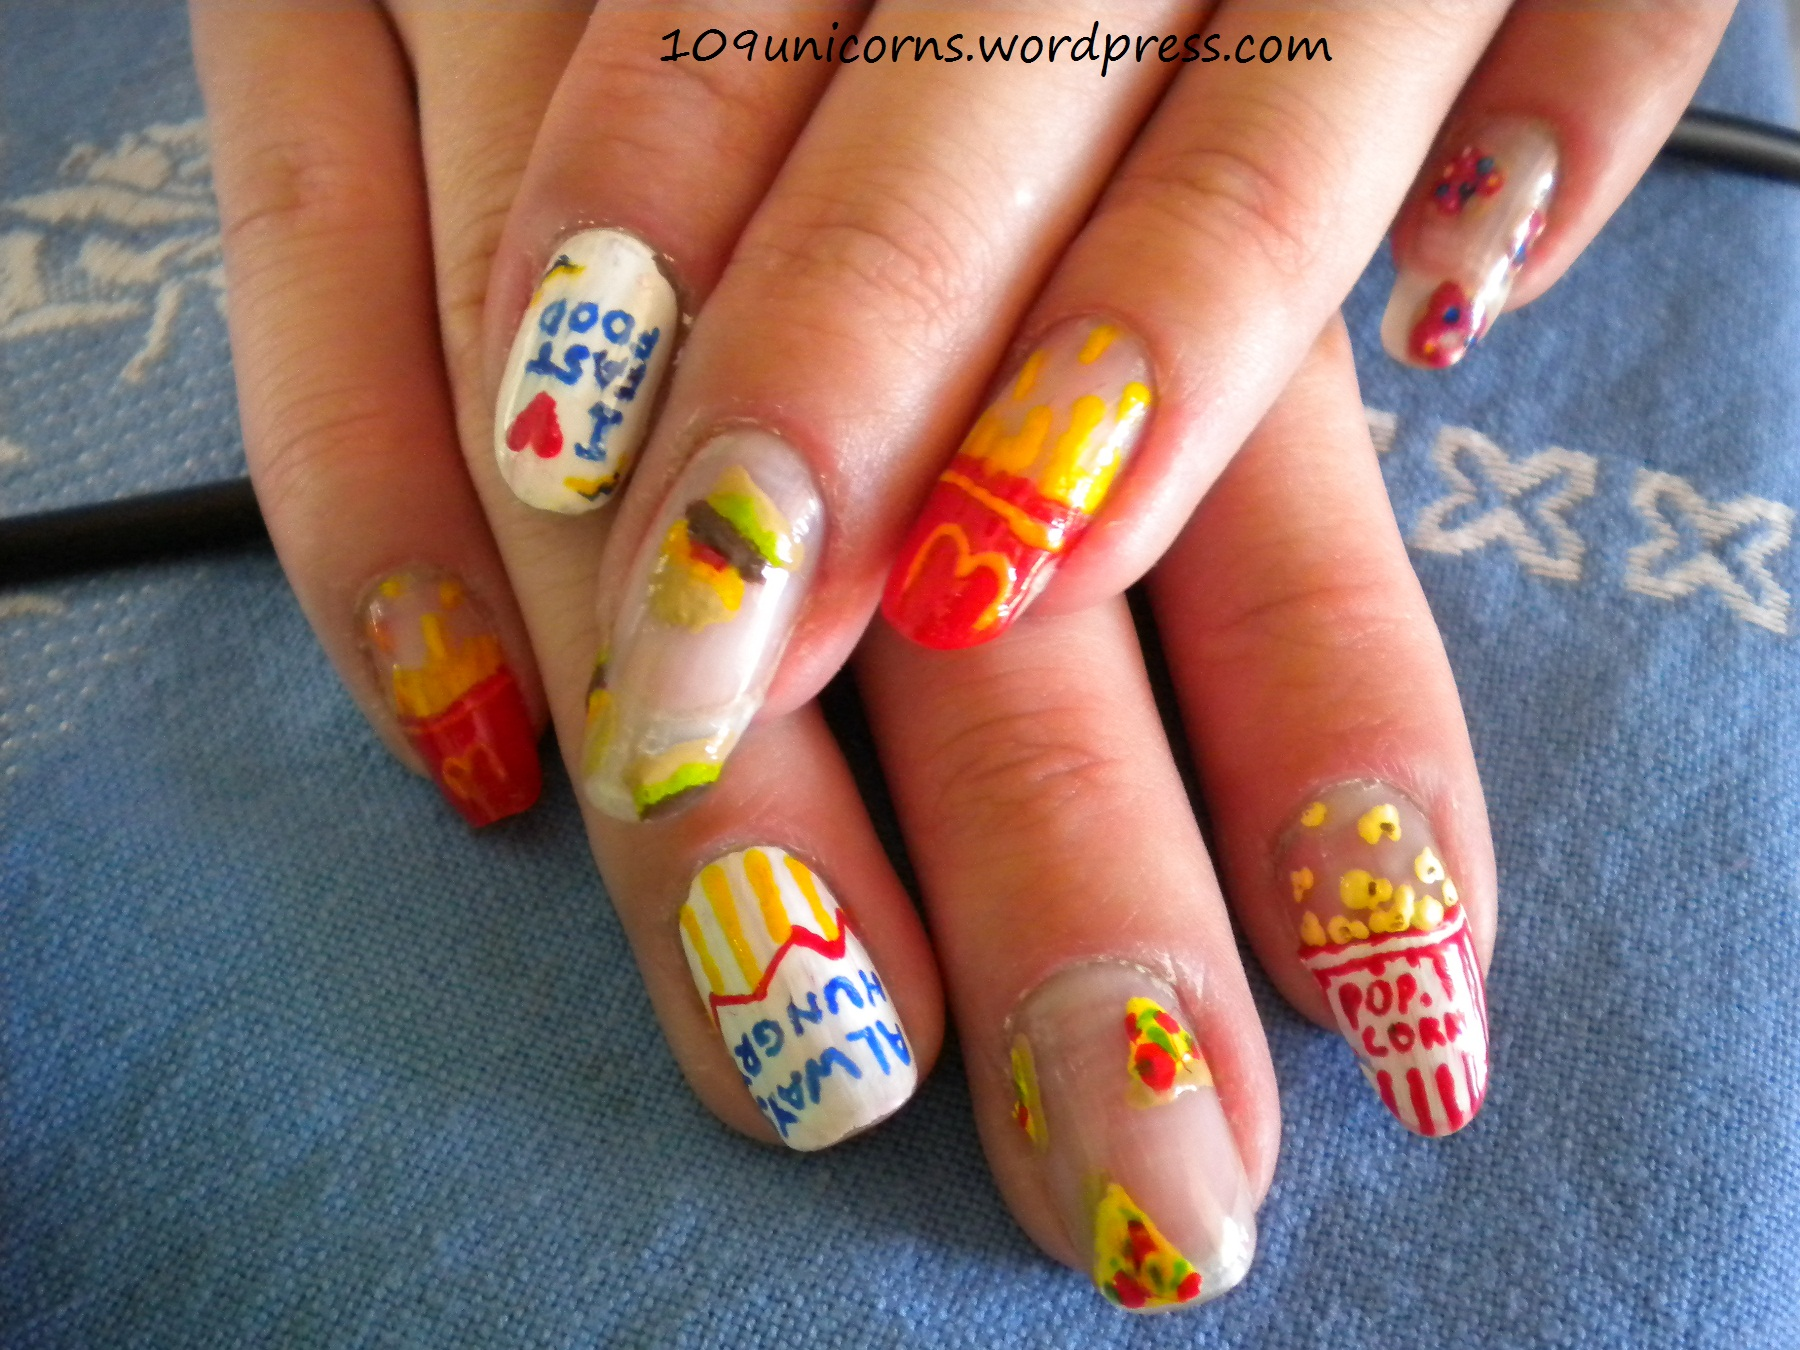 14 Nail Designs Food Images - Fast Food Nail Art, Food Nail Art and ...